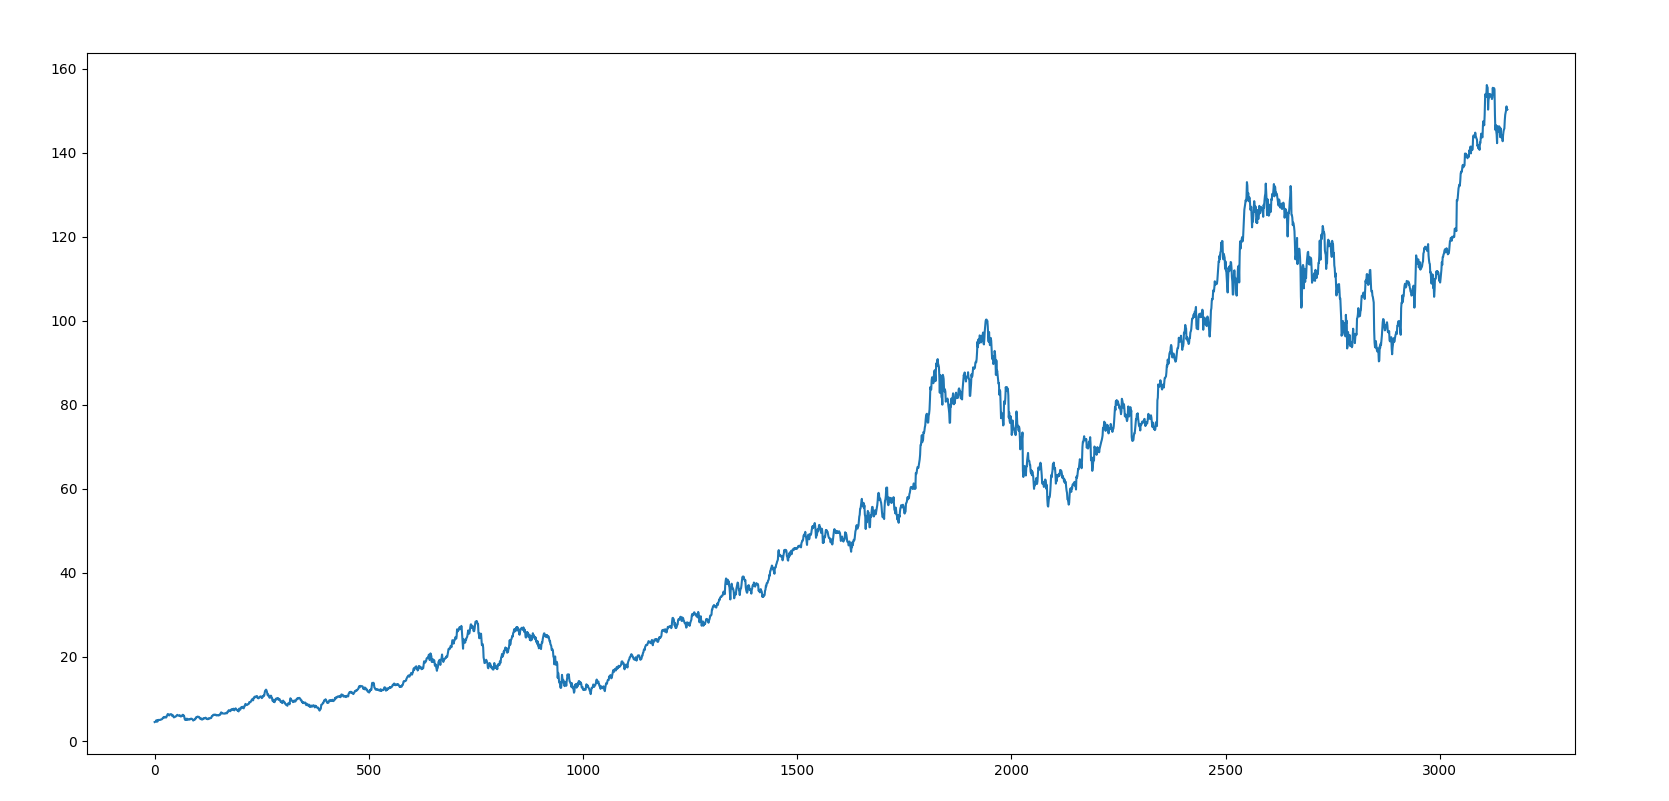 Download Historical Stock Data with R and Python - Chris Conlan